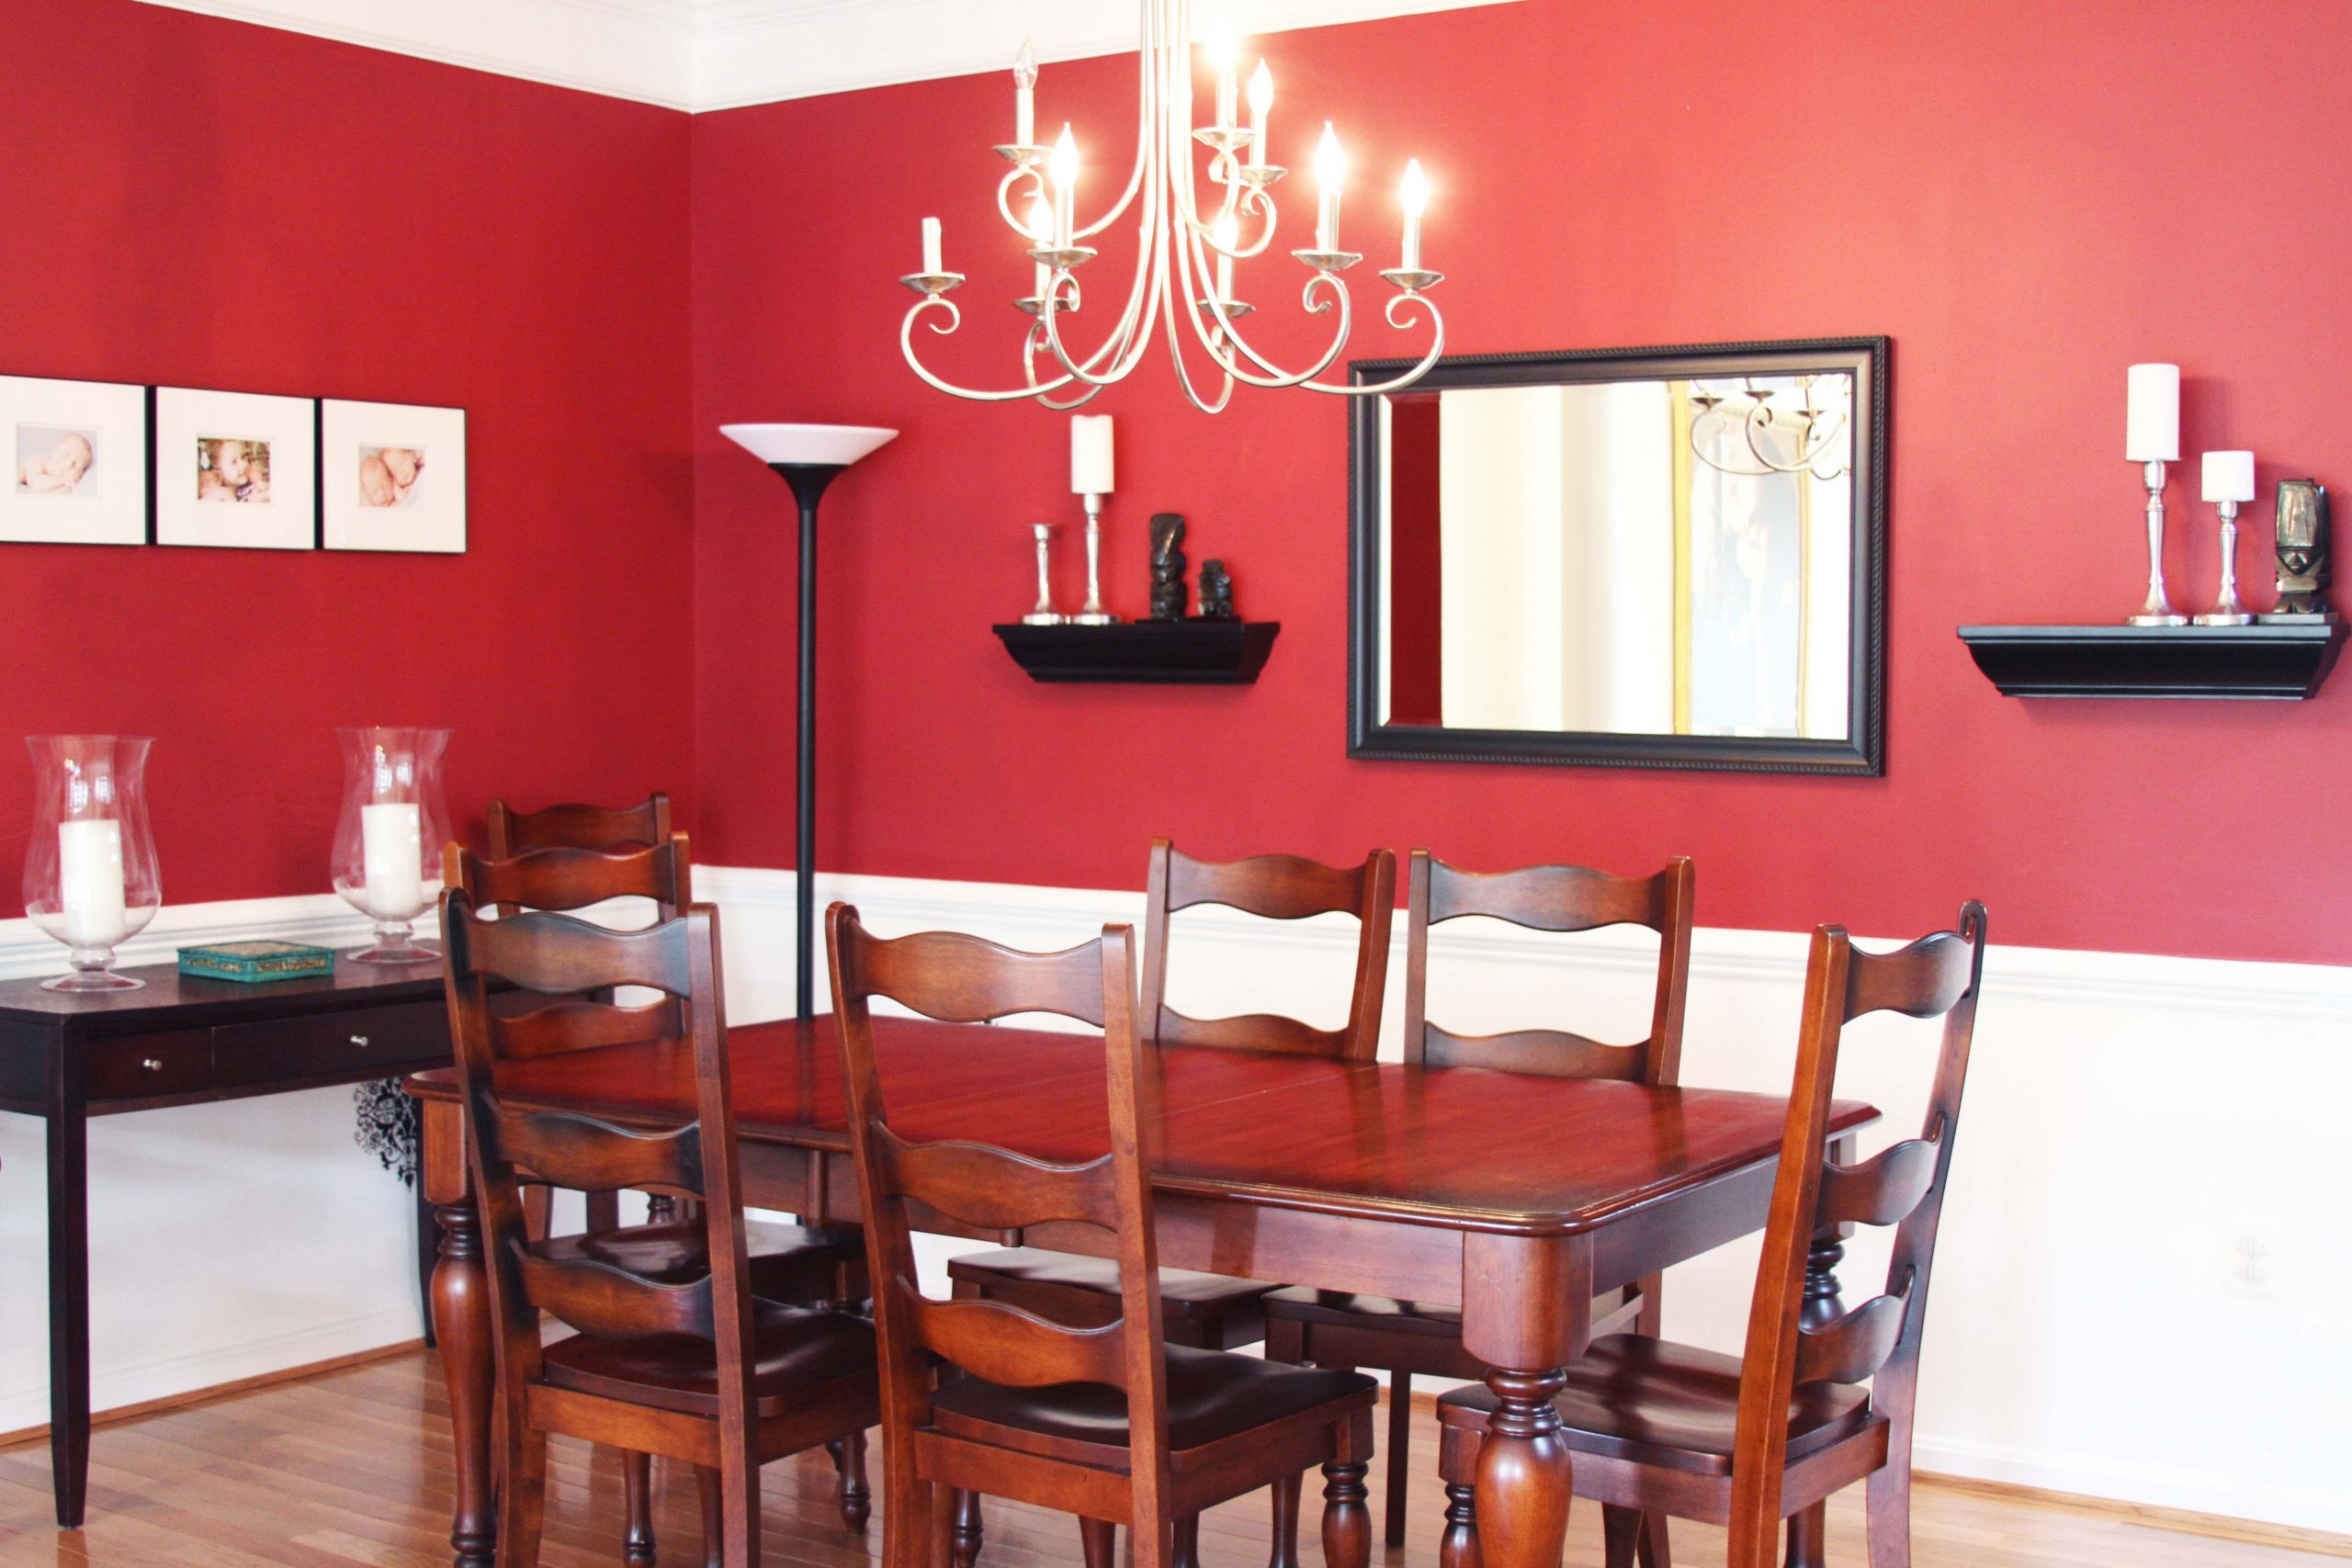 Spectacular Colors For Your Dining Room - Reliable Remodeler - Dining Room Ideas Red